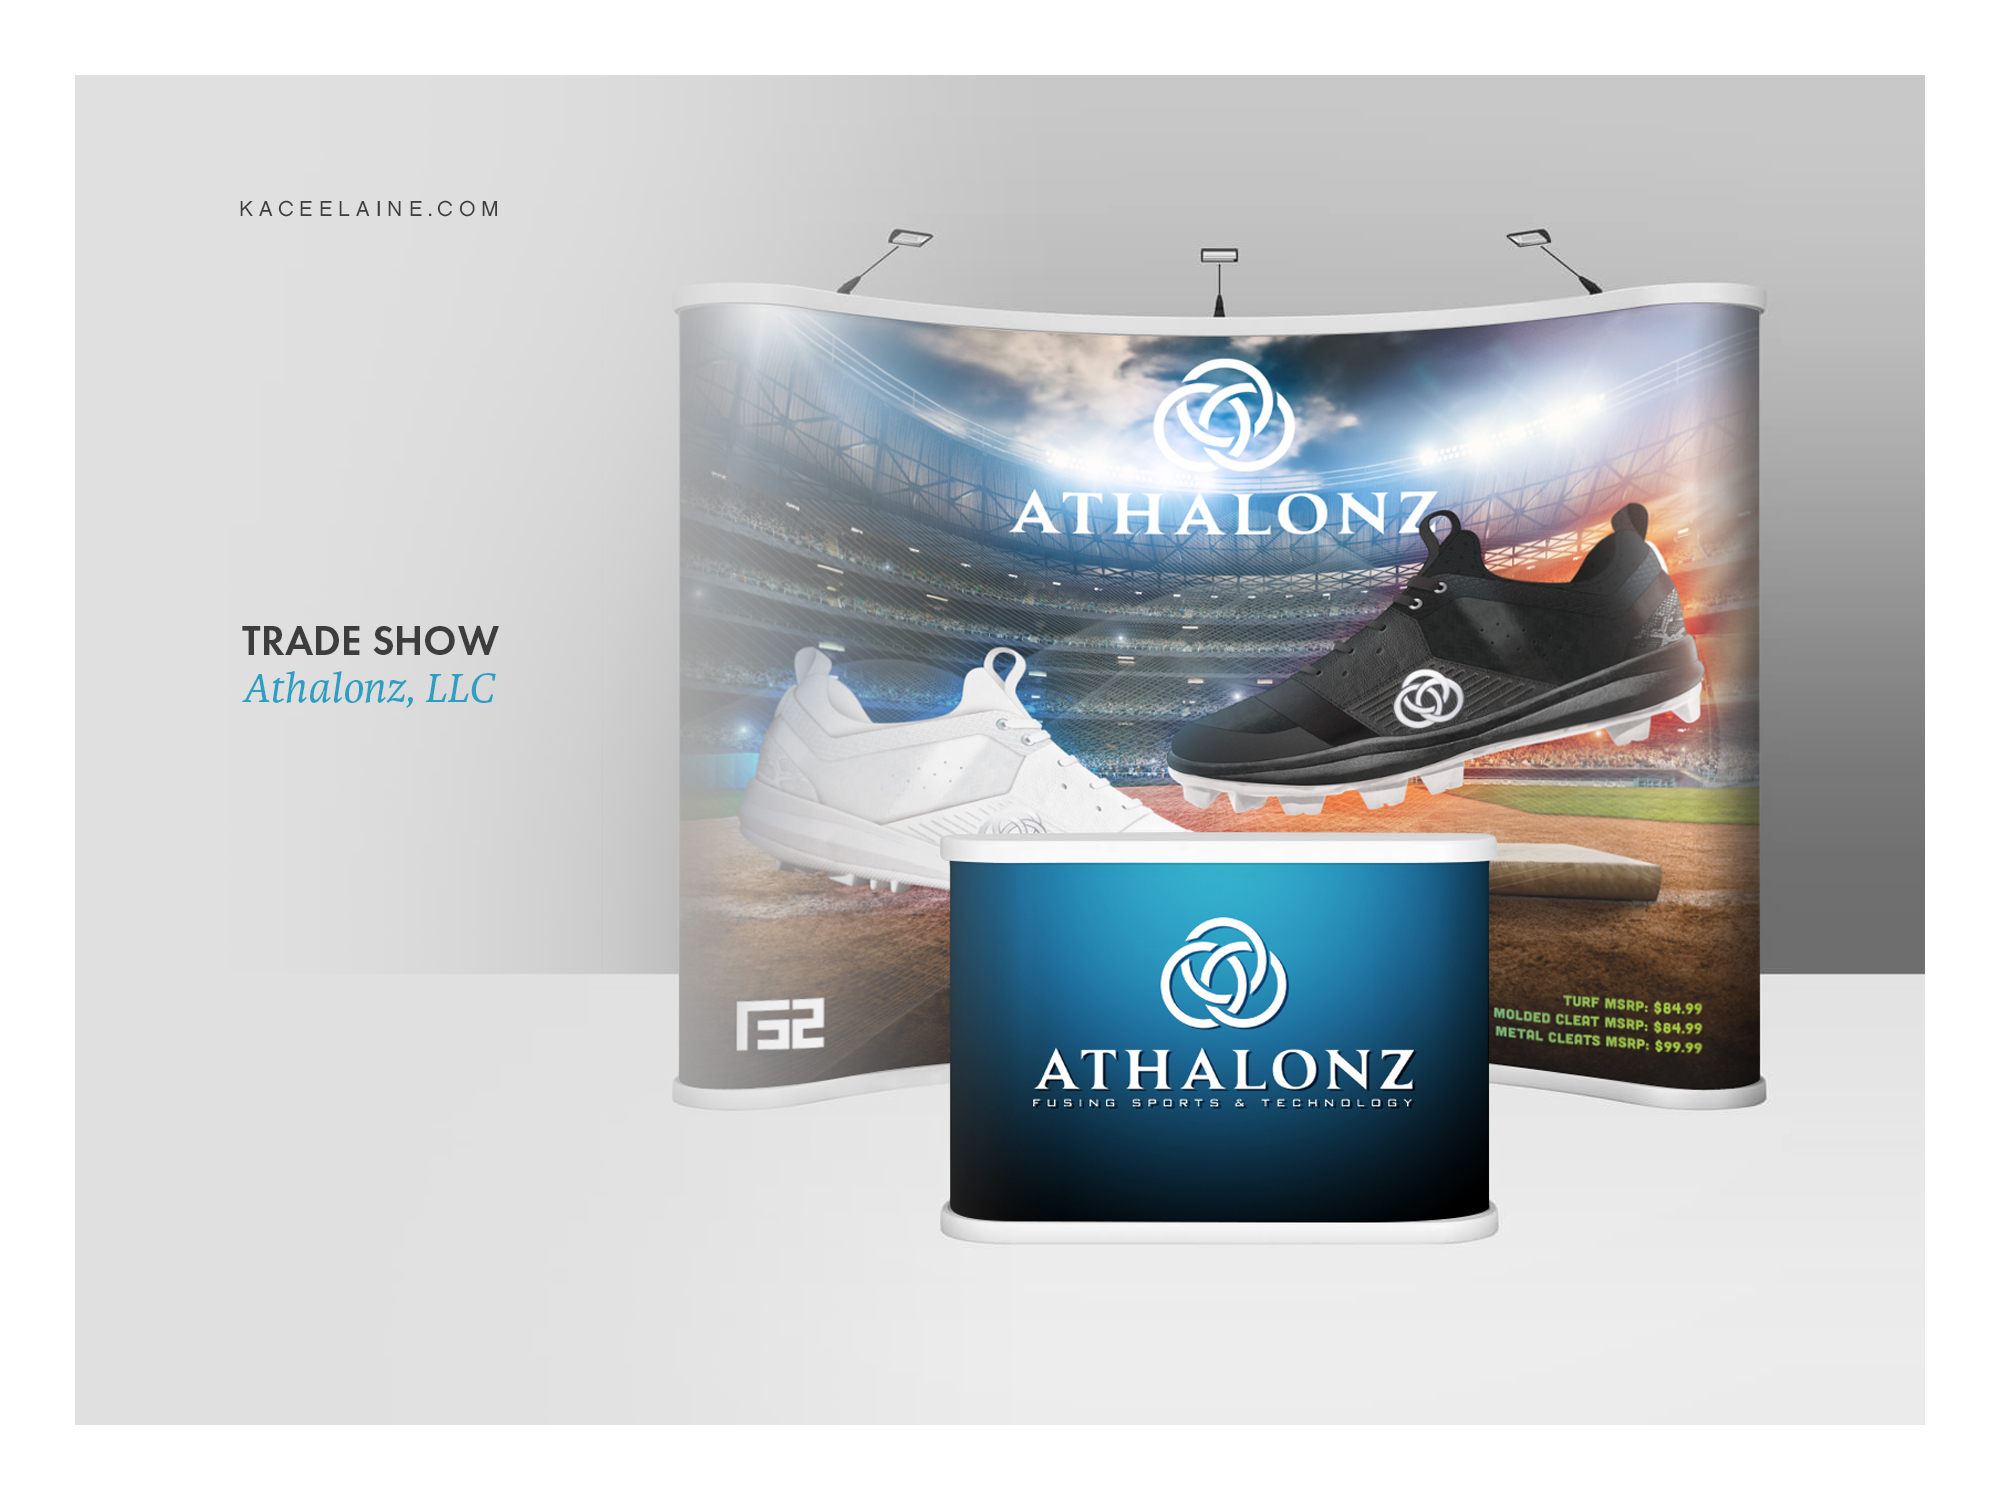 Trade Show Design for Athalonz